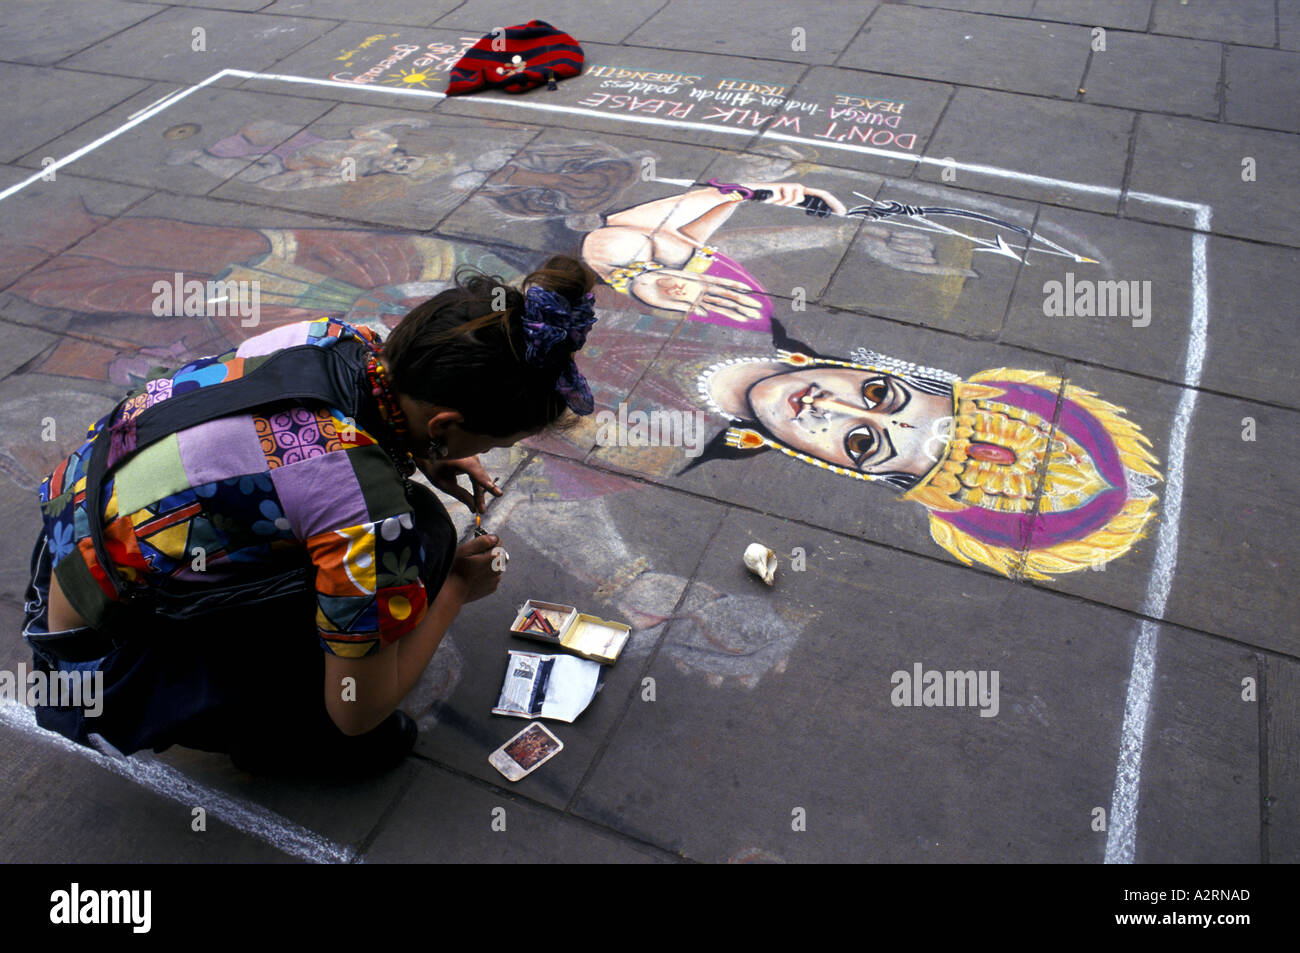 street artist drawing on pavement edinburgh fringe festival - Stock Image